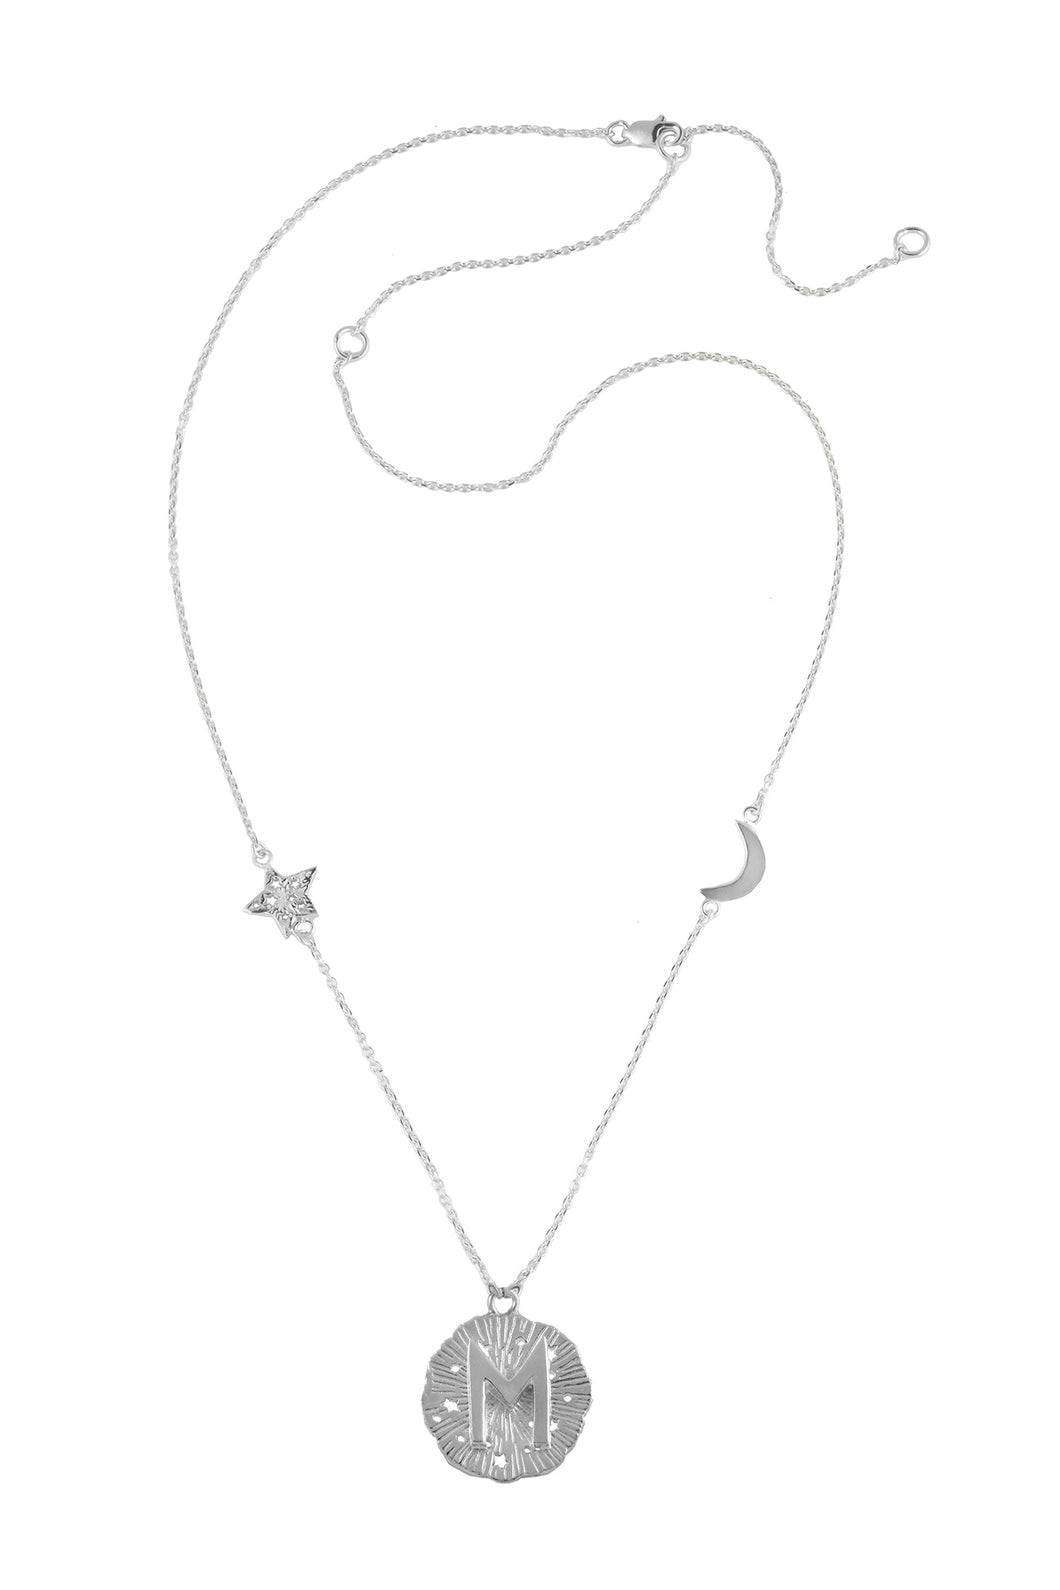 Chain necklace with small runic pendant Ewaz, star and moon, 46 сm. Silver.